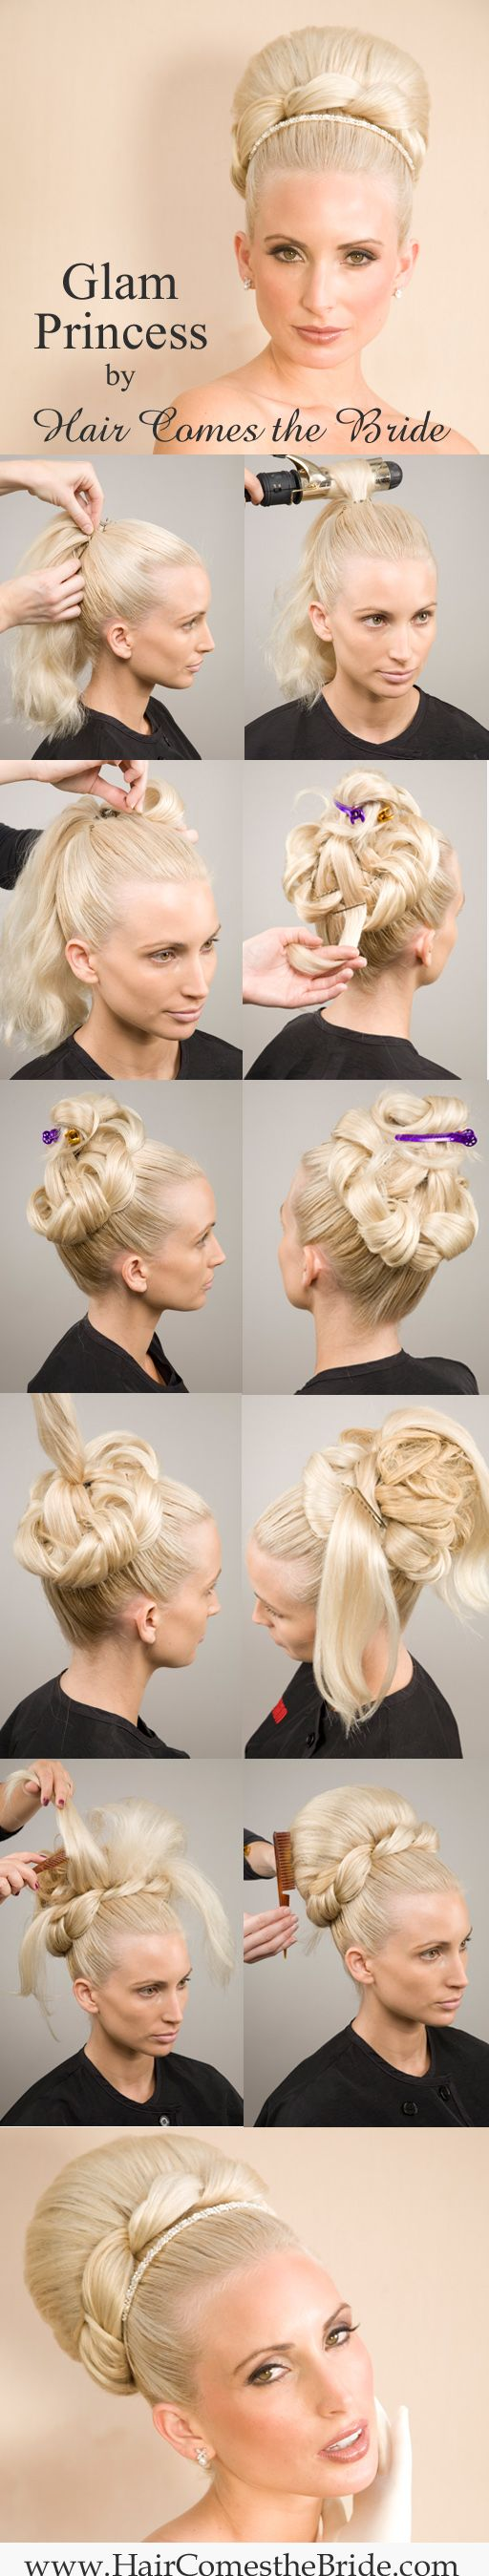 How to by Hair Comes the Bride - Glam Princess